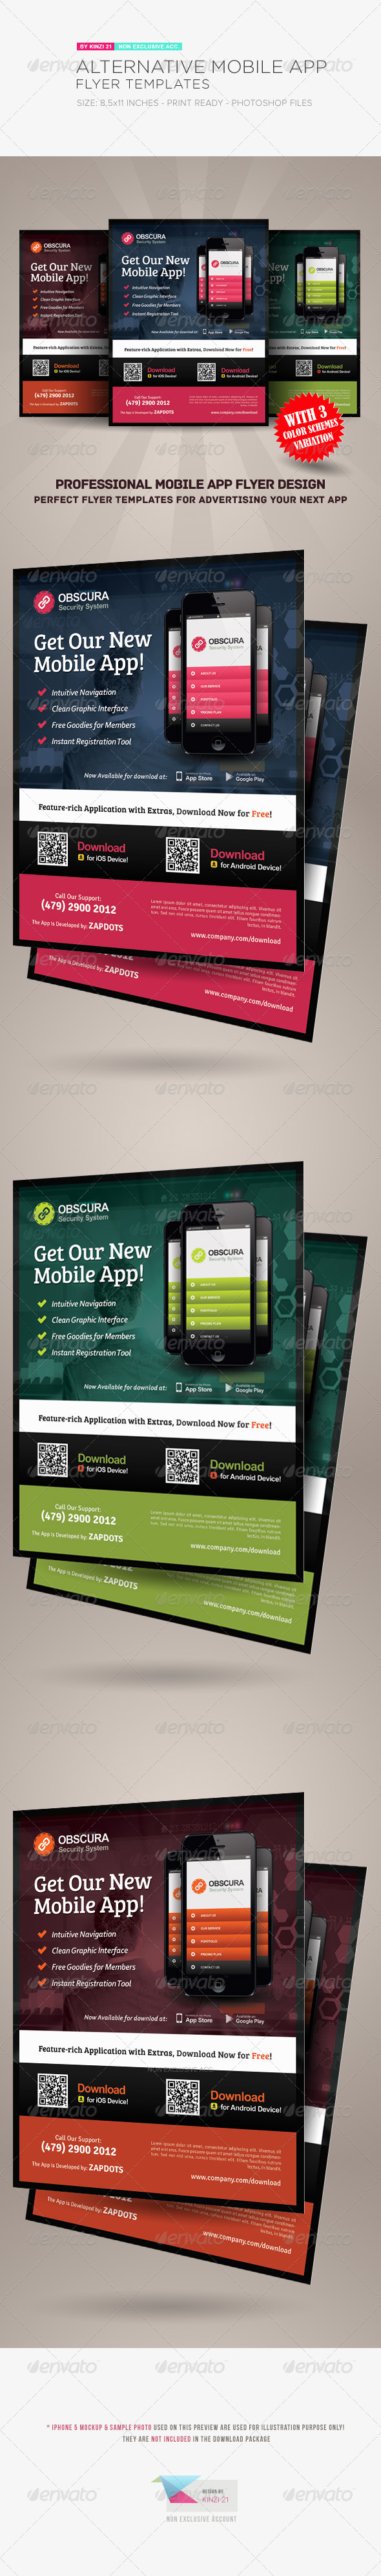 GraphicRiver Alternative Mobile App Flyer Template 5411228